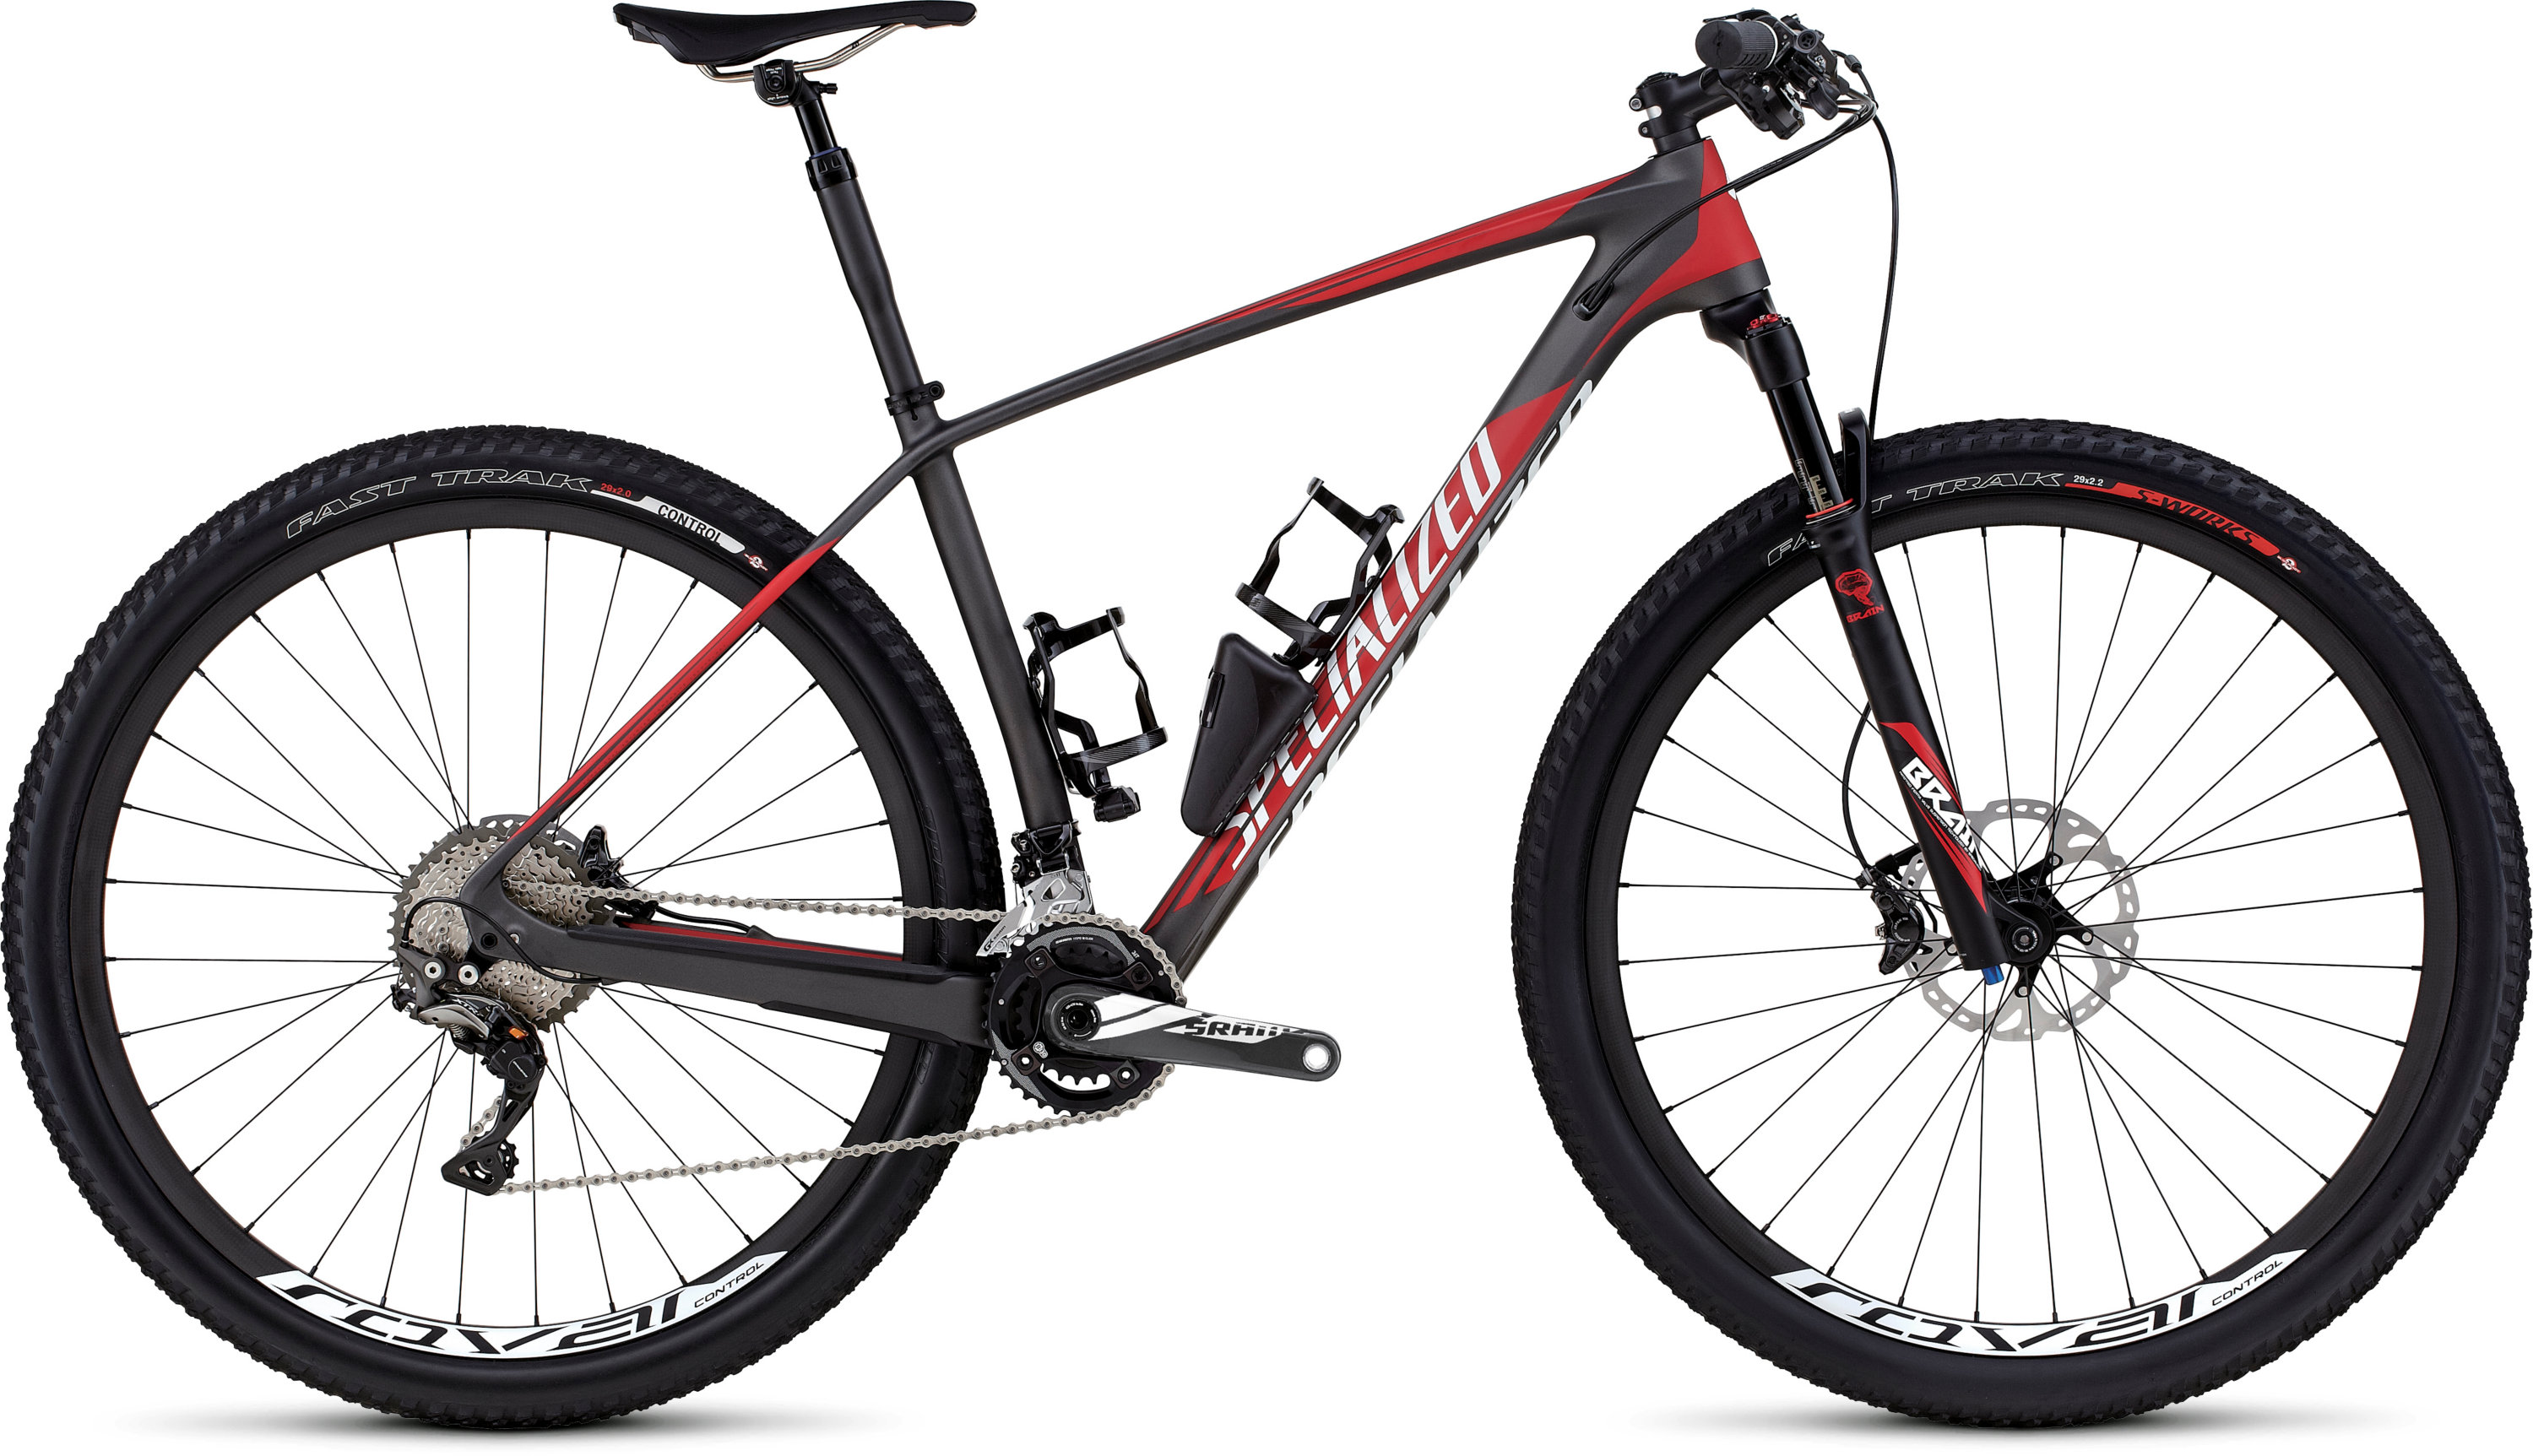 SPECIALIZED SJ HT EXPERT CARBON 29 CHARTNTCARB/RED/WHT S - schneider-sports